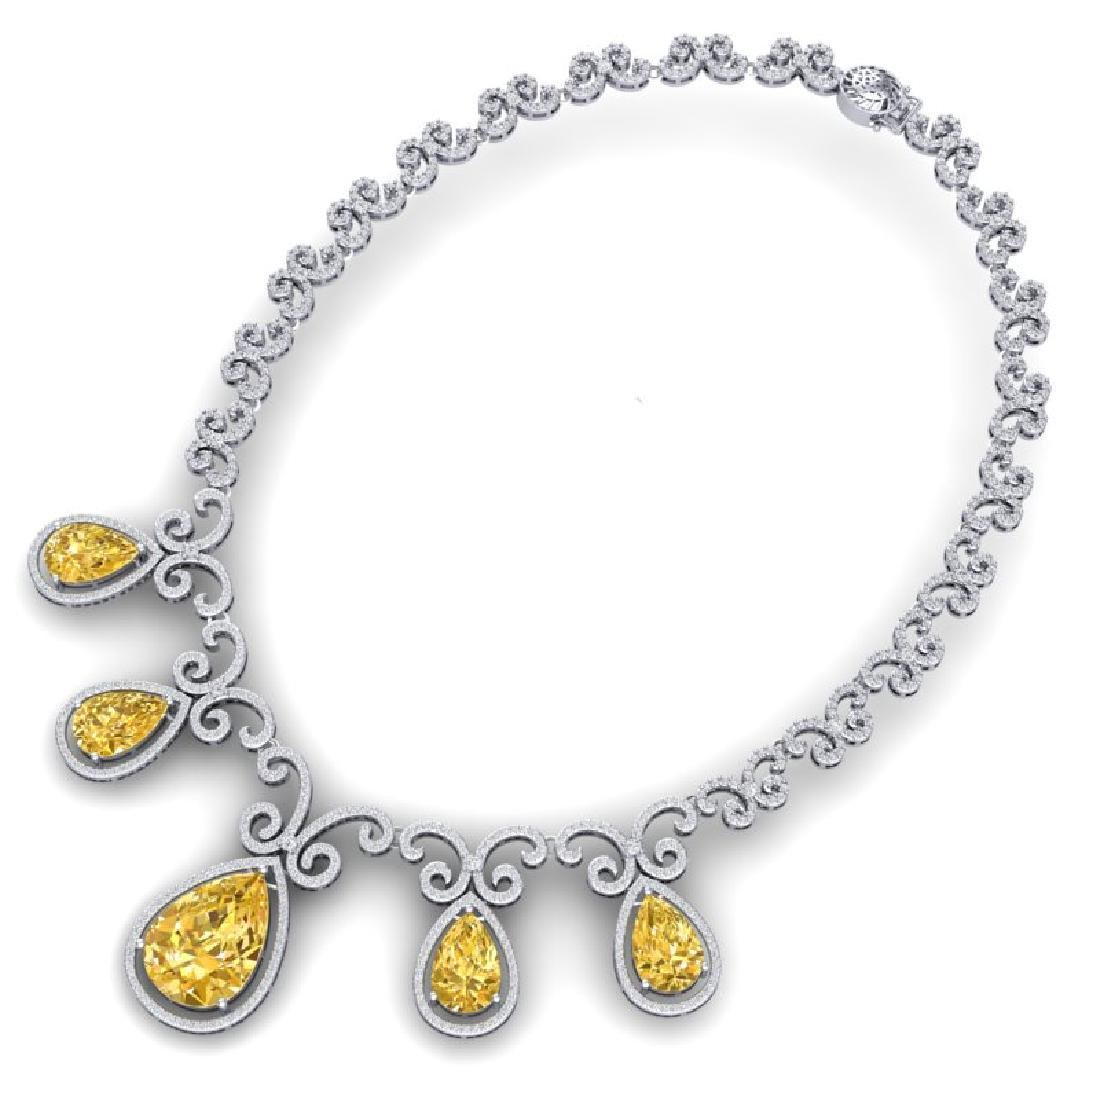 36.1 CTW Royalty Canary Citrine & VS Diamond Necklace - 3